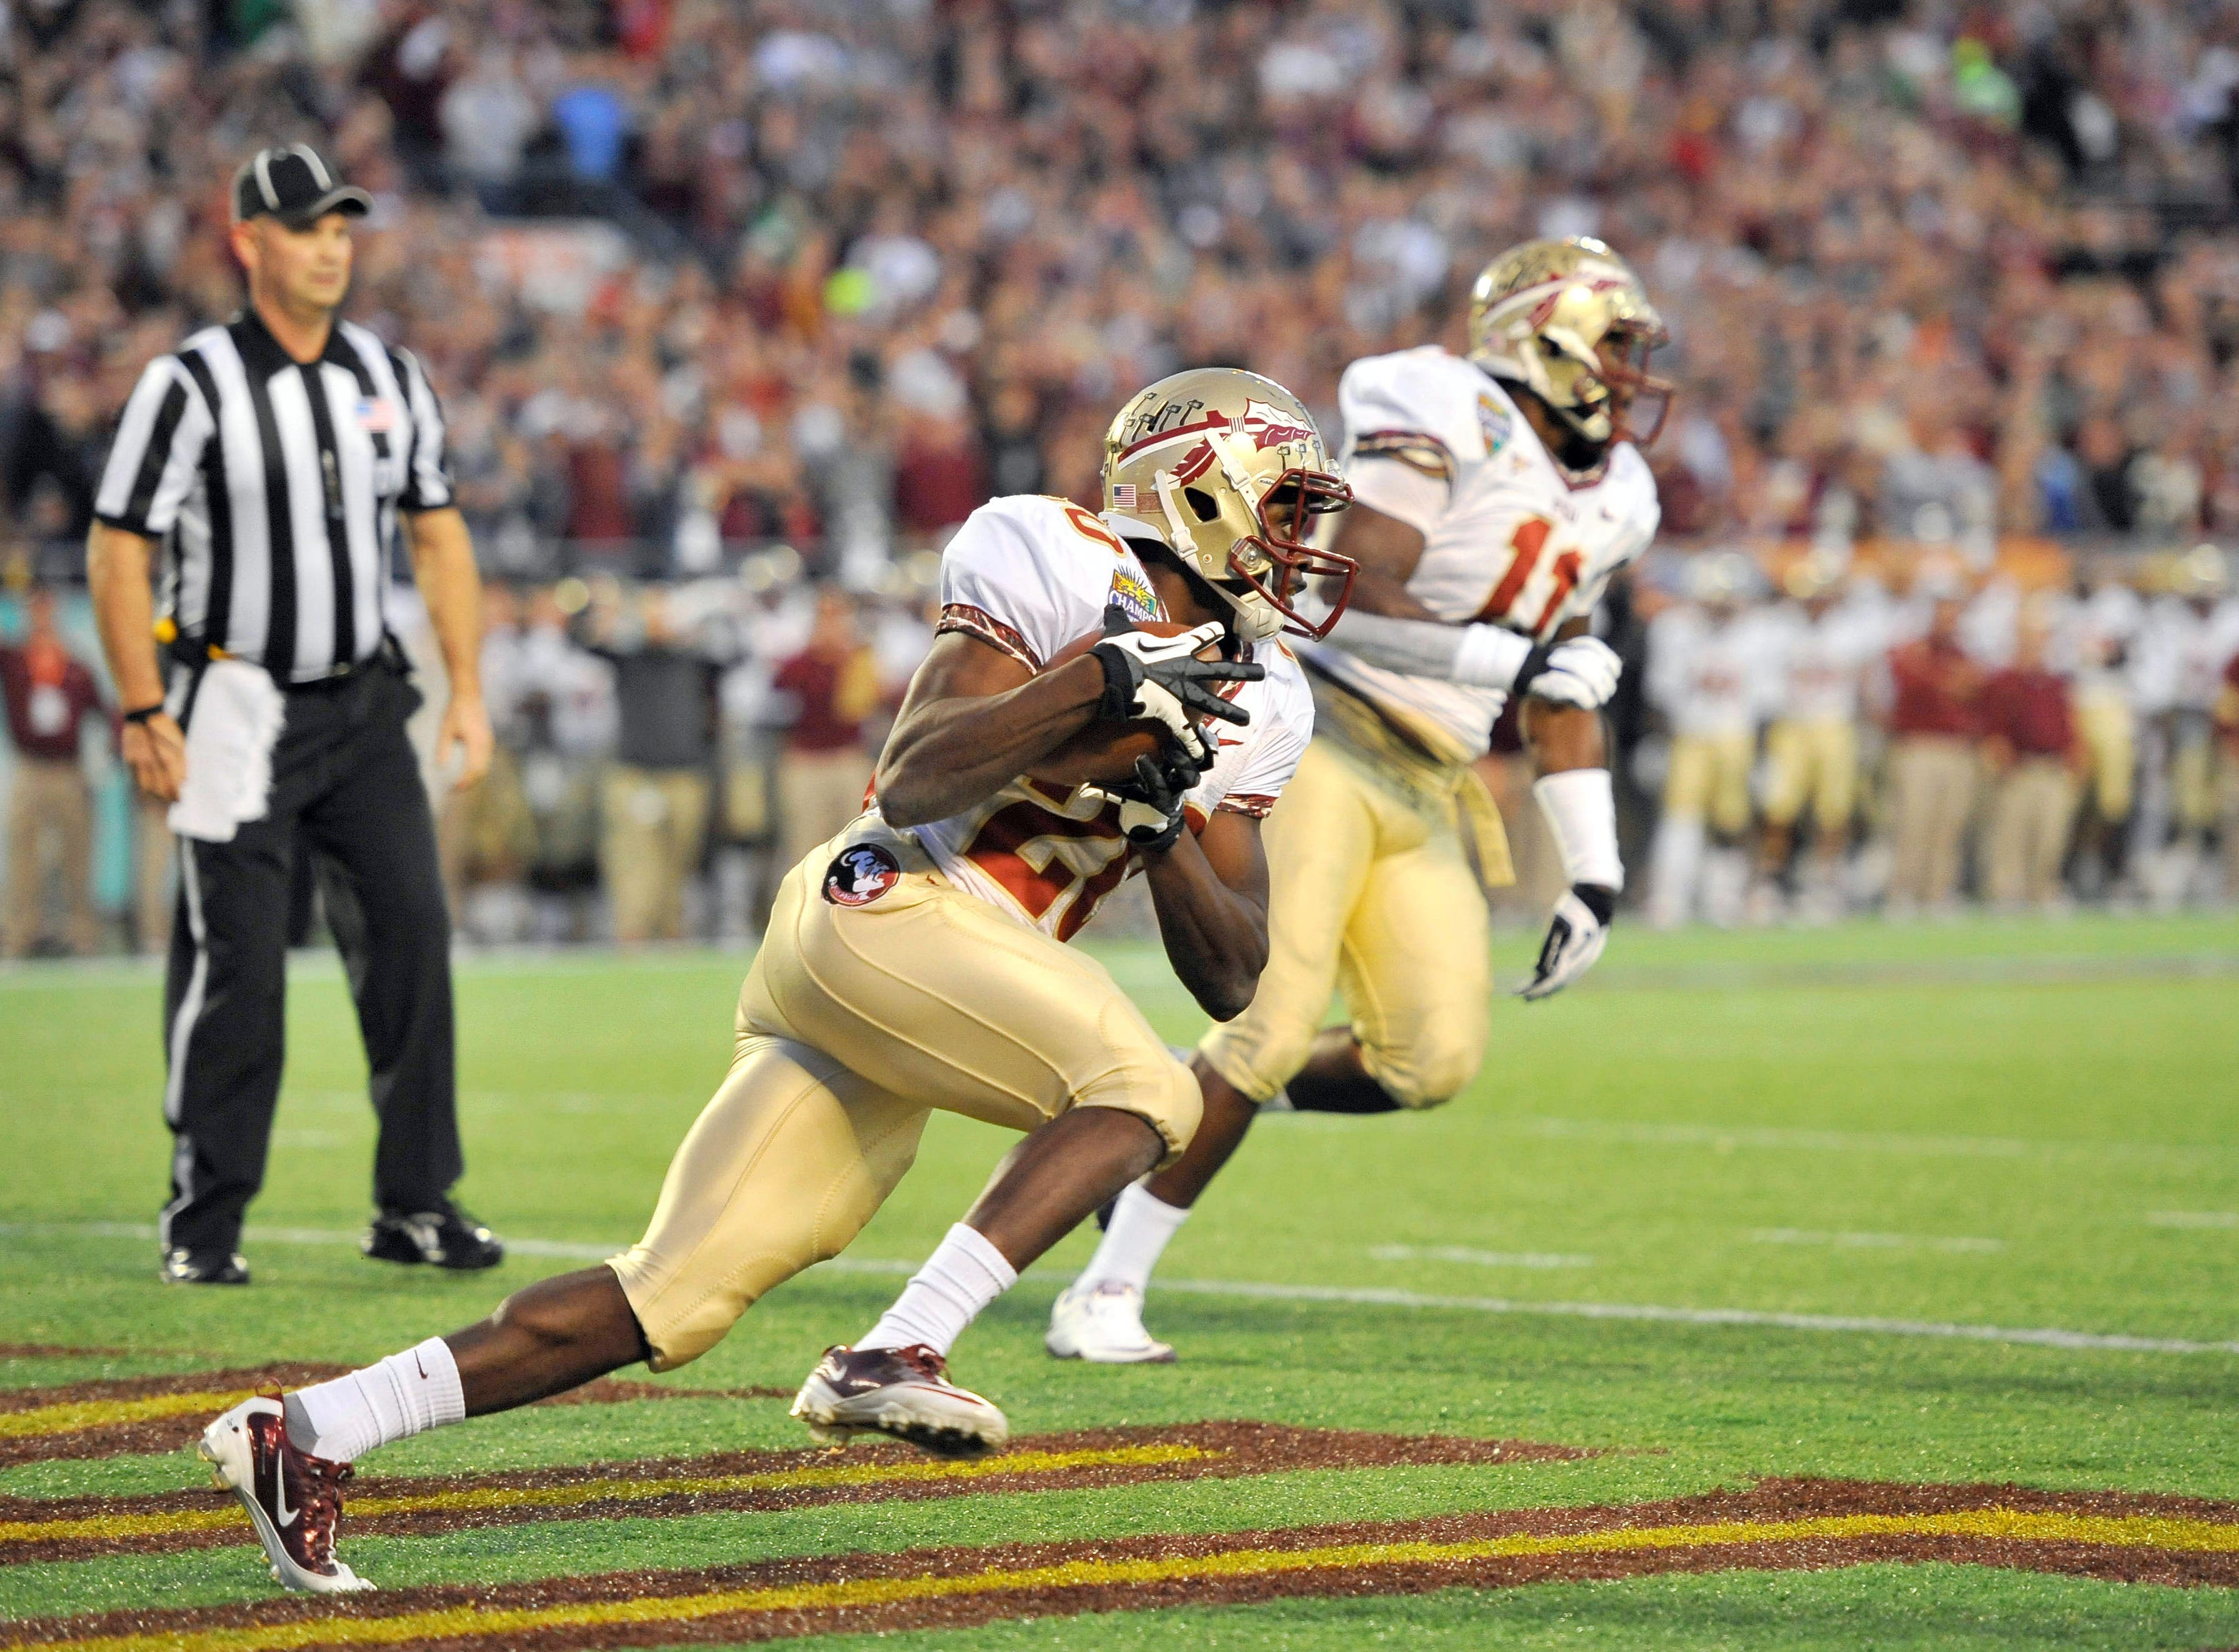 December 29, 2011; Orlando, FL, USA;  Florida State Seminoles safety Lamarcus Joyner (20) makes the interception in the endzone and runs it out against the Notre Dame Fight Irish at the Champs Sports Bowl at Citrus Bowl. Mandatory Credit: Brad Barr-USA TODAY Sports